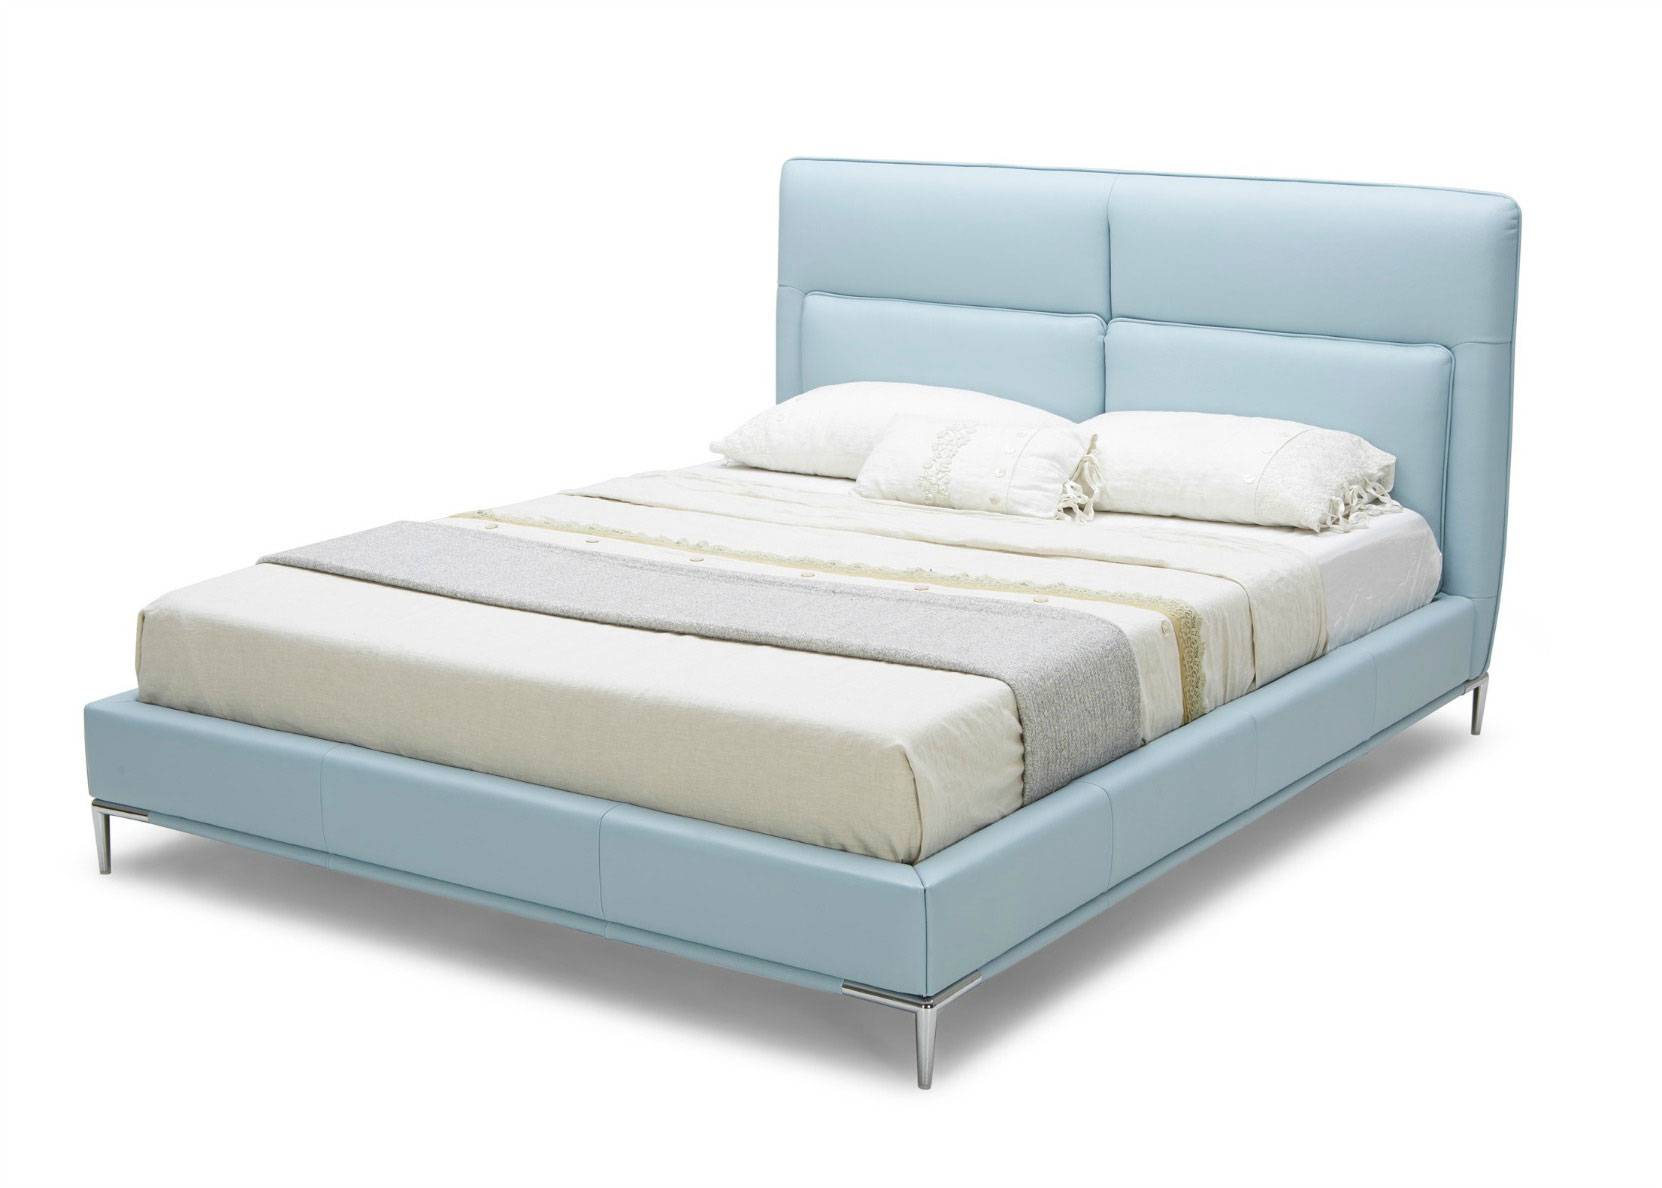 Diva Bed In Sky Blue Leather Headboard Not Just Brown